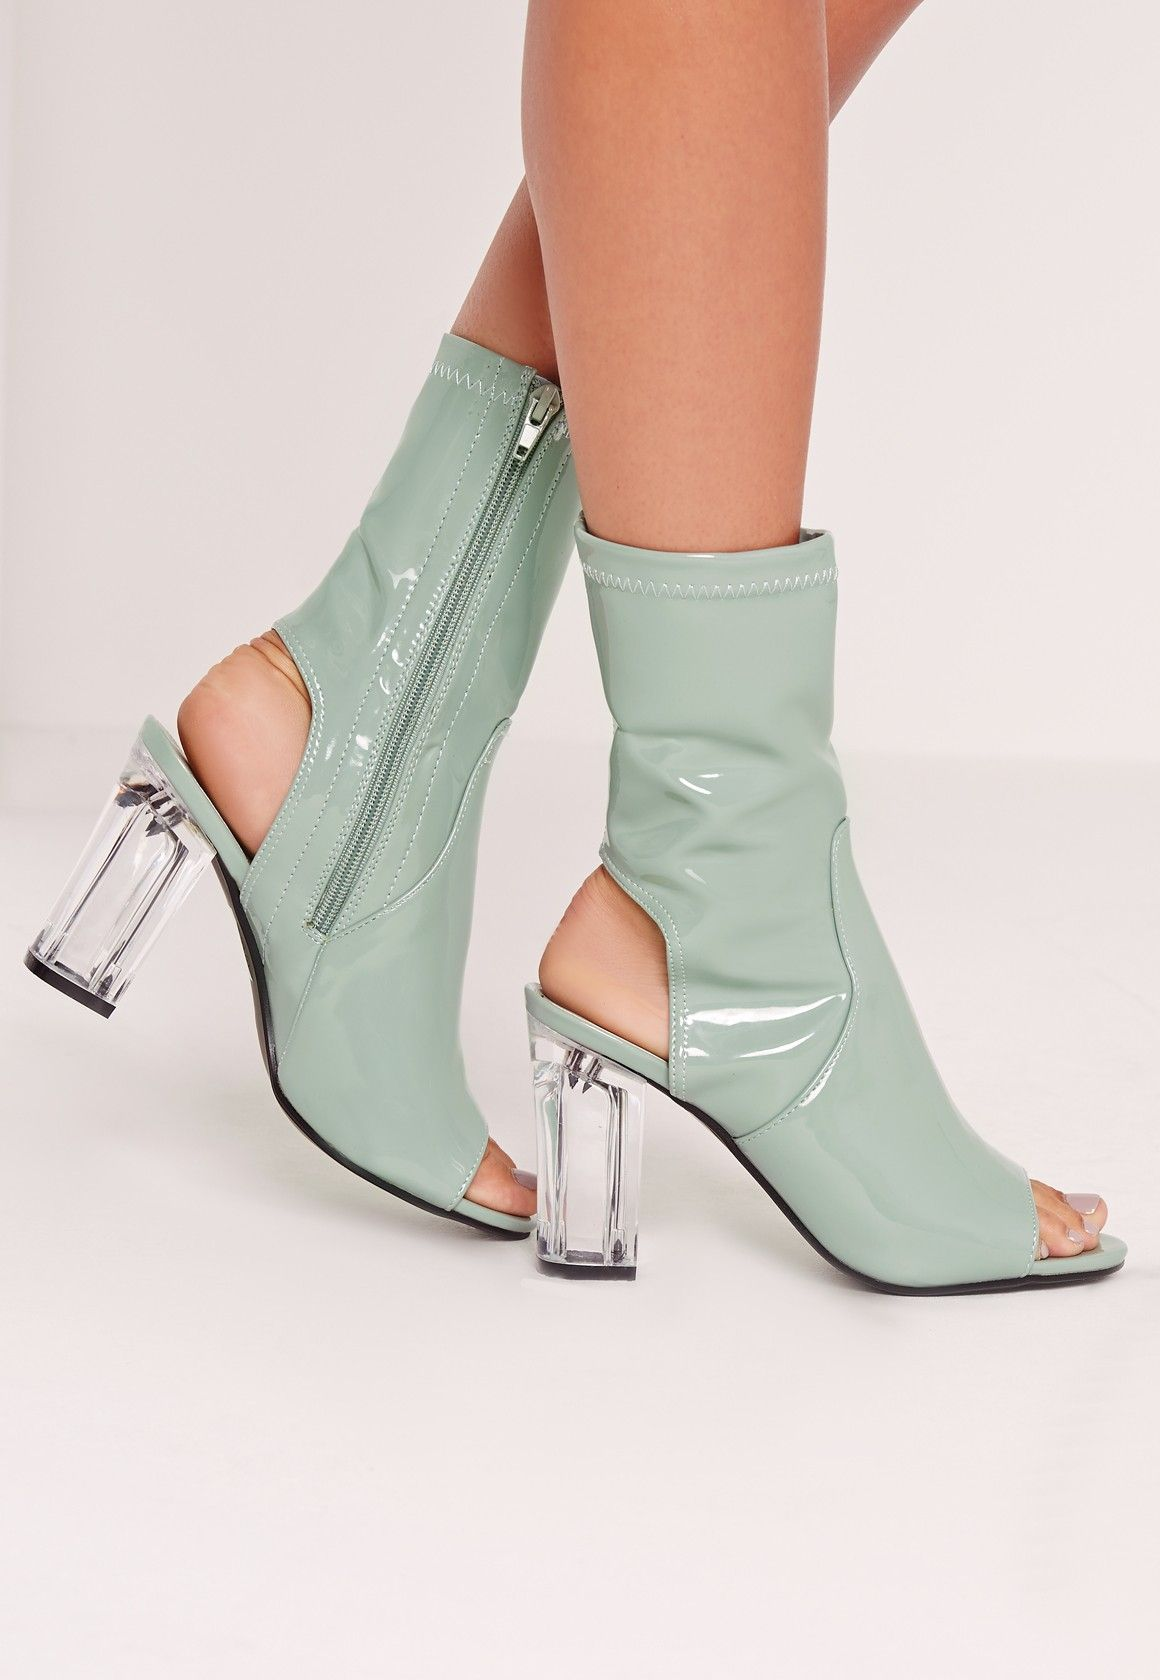 ff0fdfe9342 Missguided - Patent Peep Toe Perspex Block Heel Ankle Boots Green ...